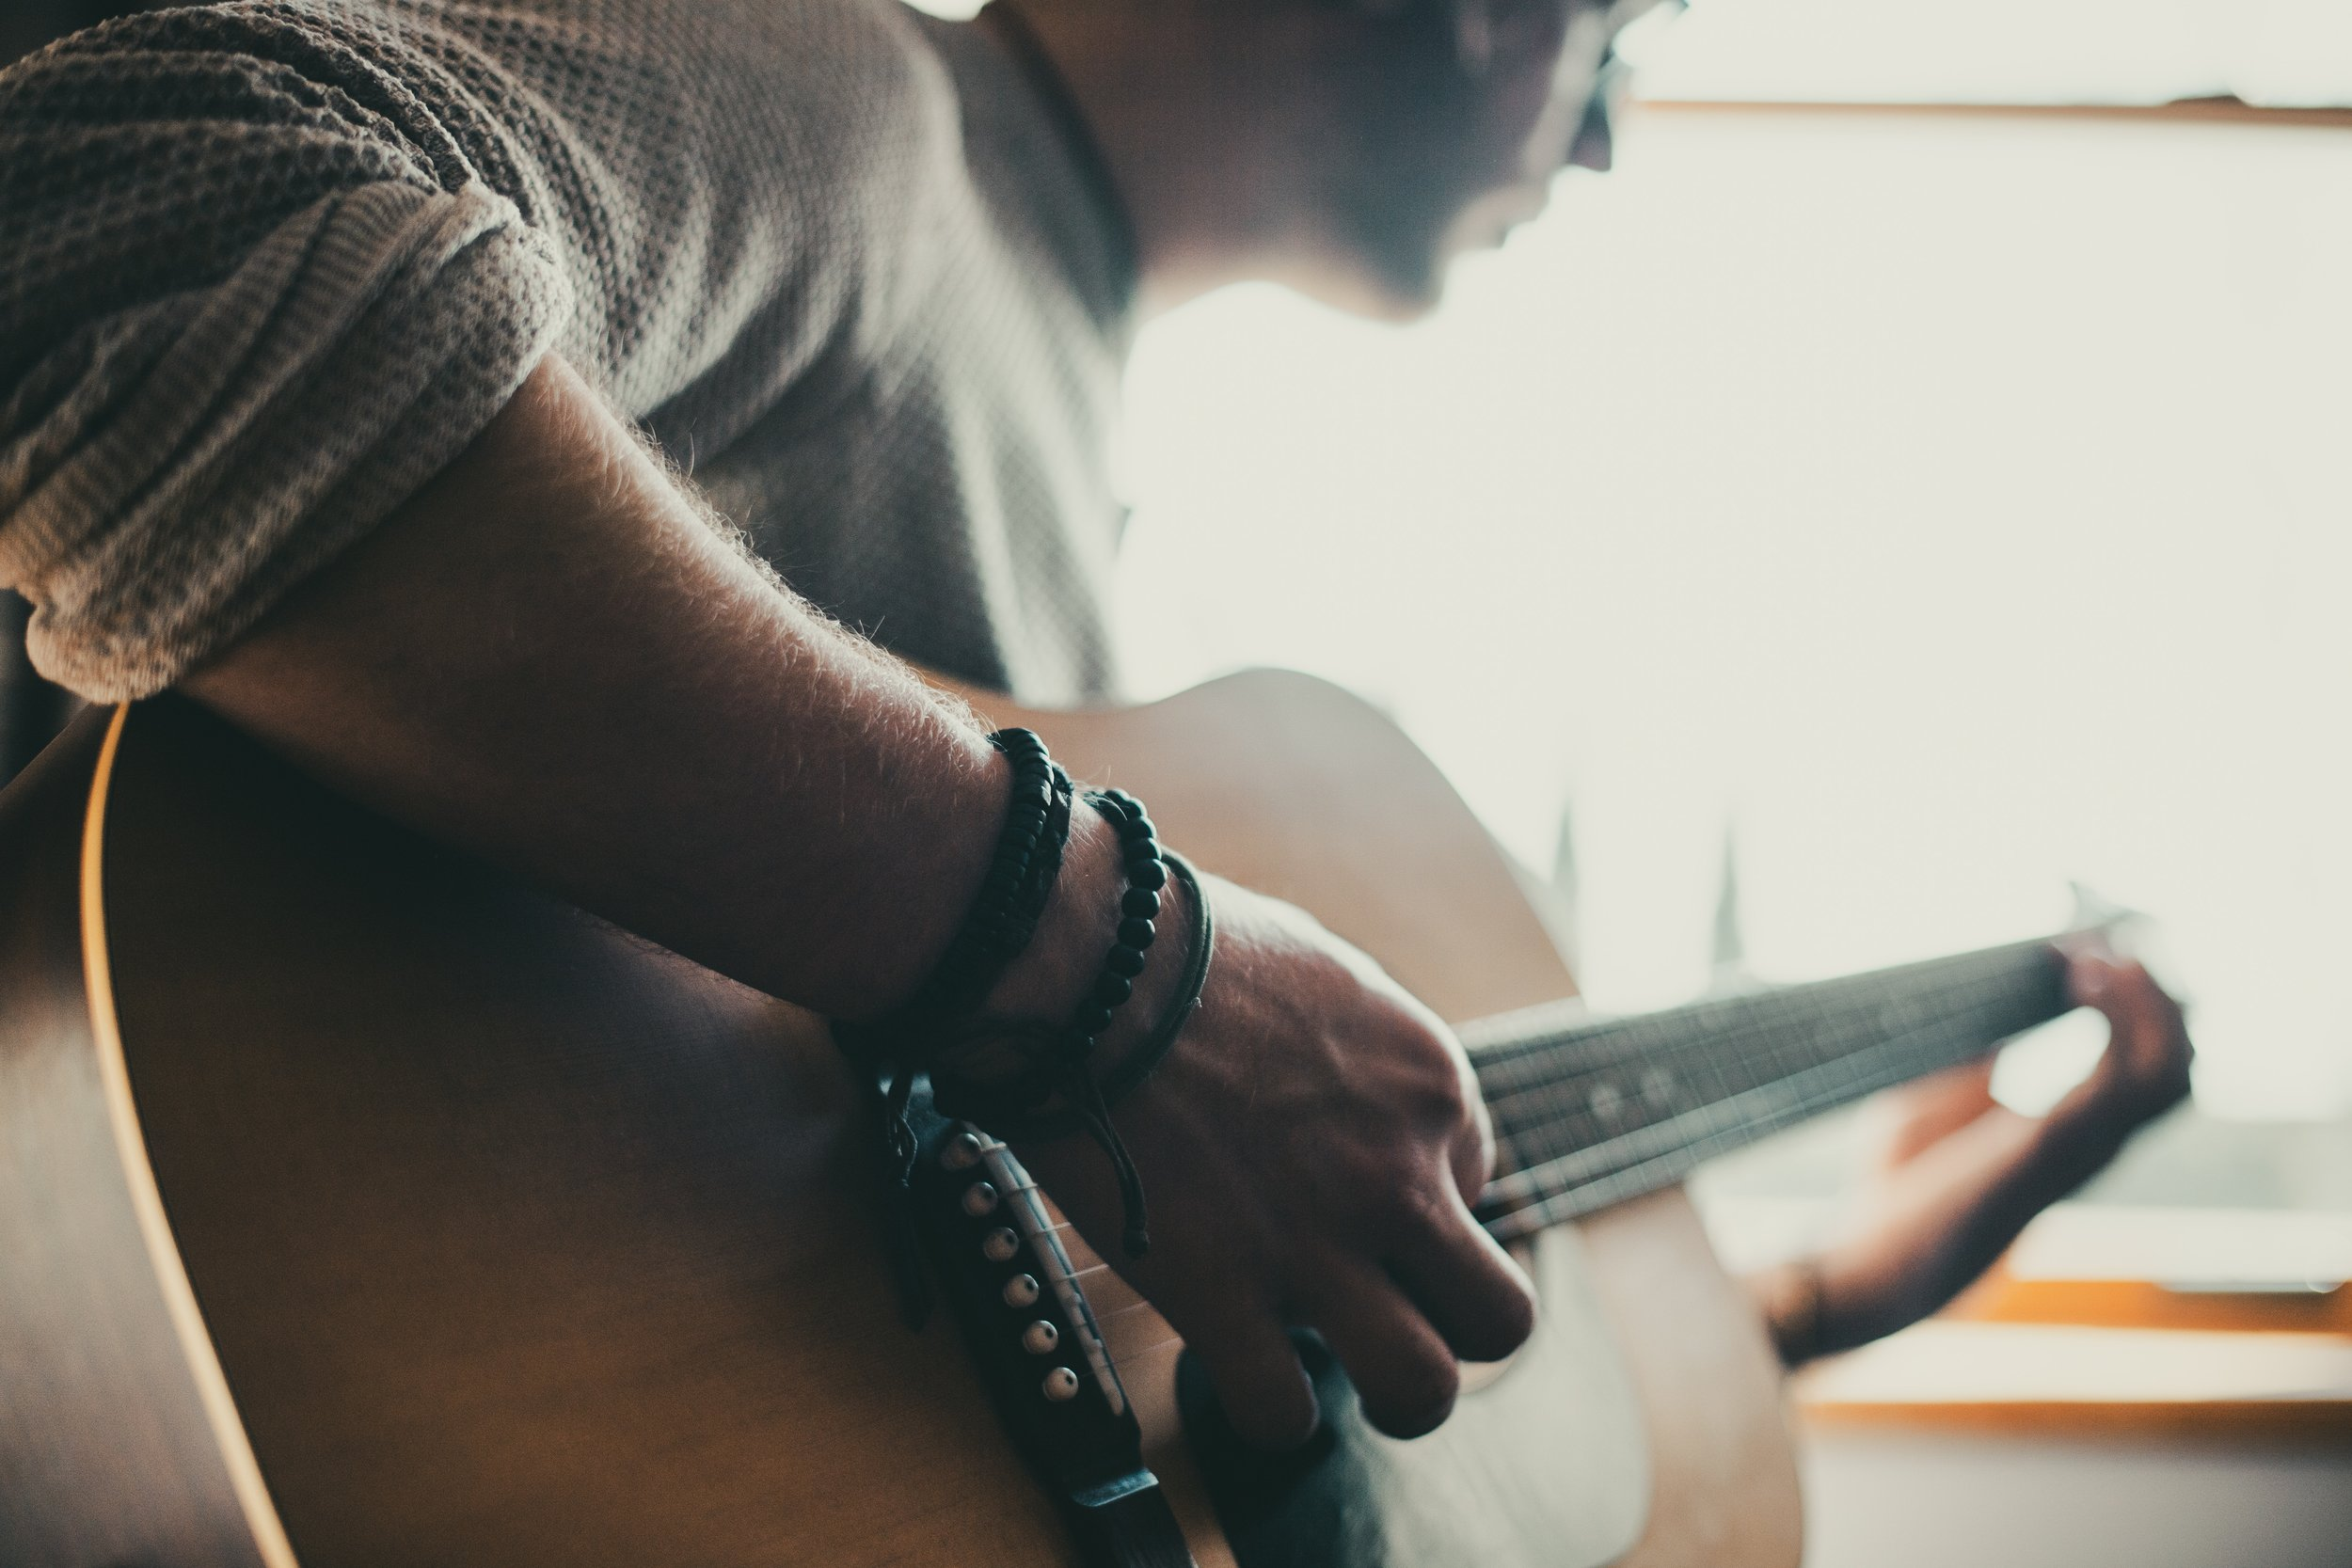 MUSICALLY INCLINED? -